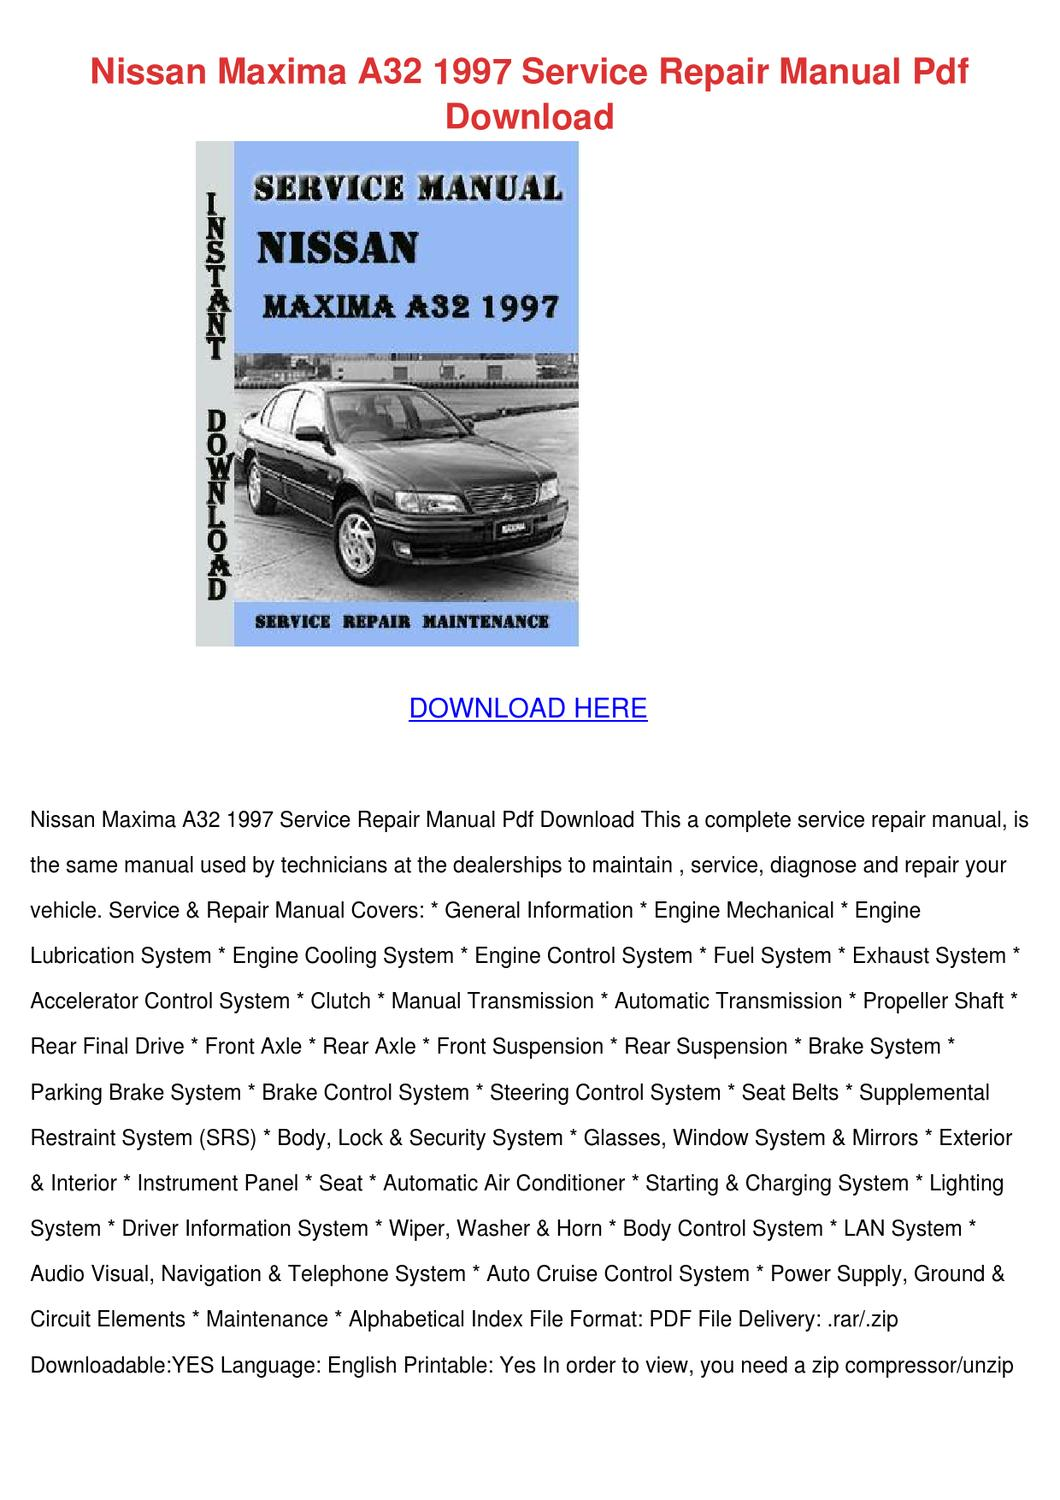 Nissan Maxima A32 1997 Service Repair Manual